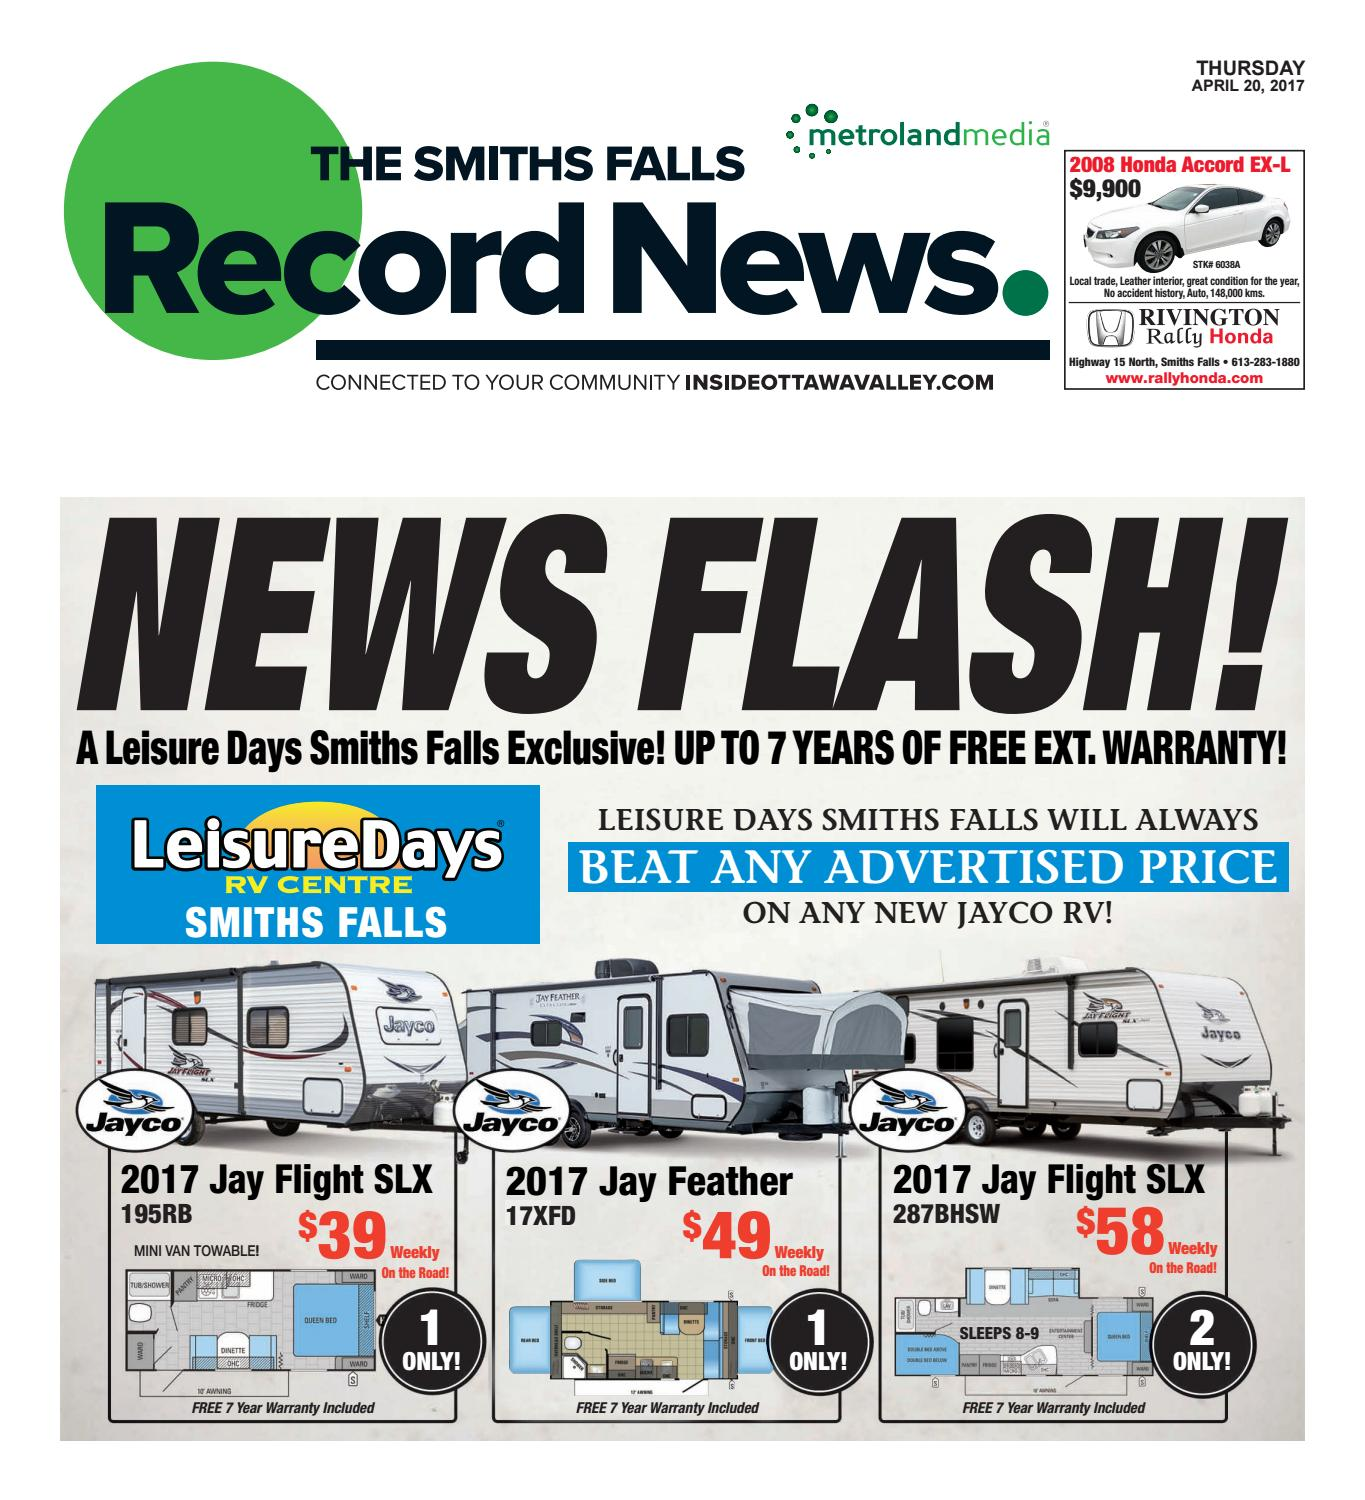 Smithsfalls042017 by metroland east smiths falls record news issuu fandeluxe Images